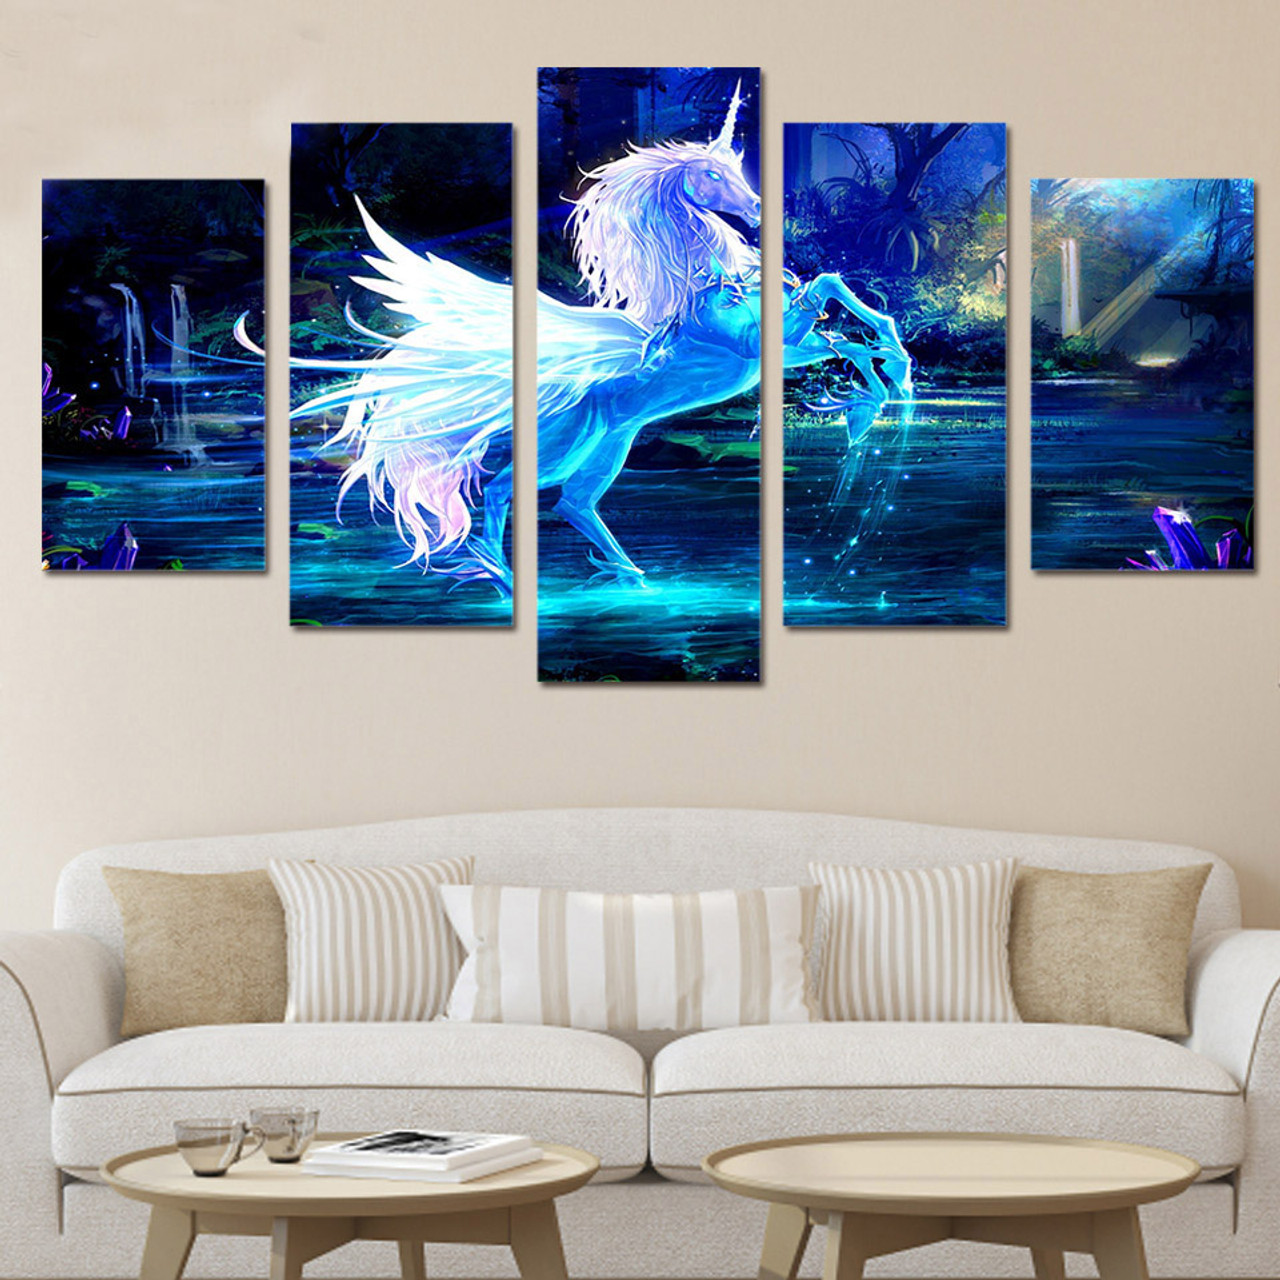 09453392168e9 HD Printed 5 Piece Canvas Sets Art Unicorn Horse Painting Canvas Pictures  for Living Room Free Shipping